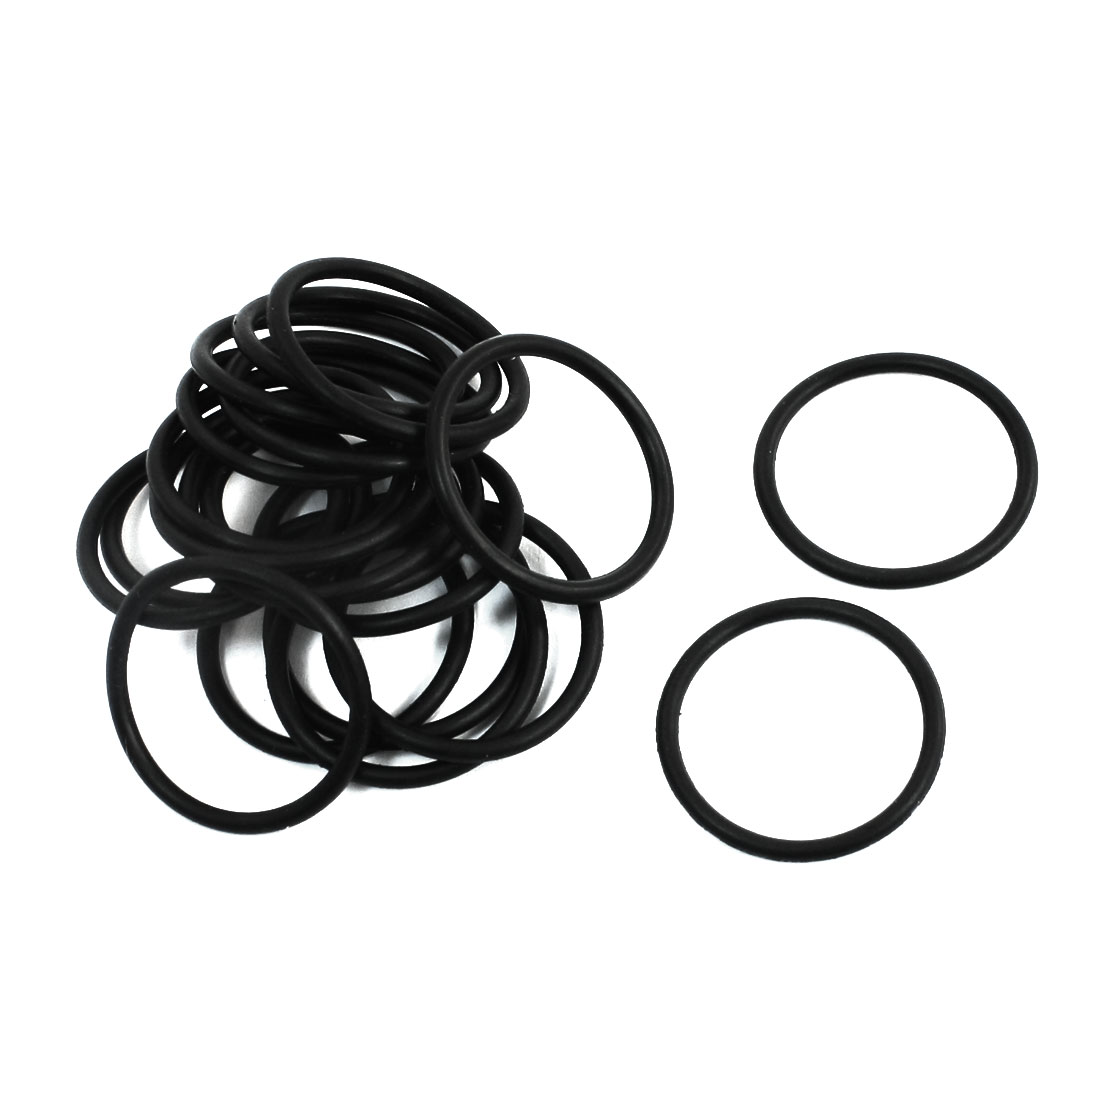 Replacement Flexible Rubber Oil Seal Filter Rings Washers 25x2mm 20Pcs